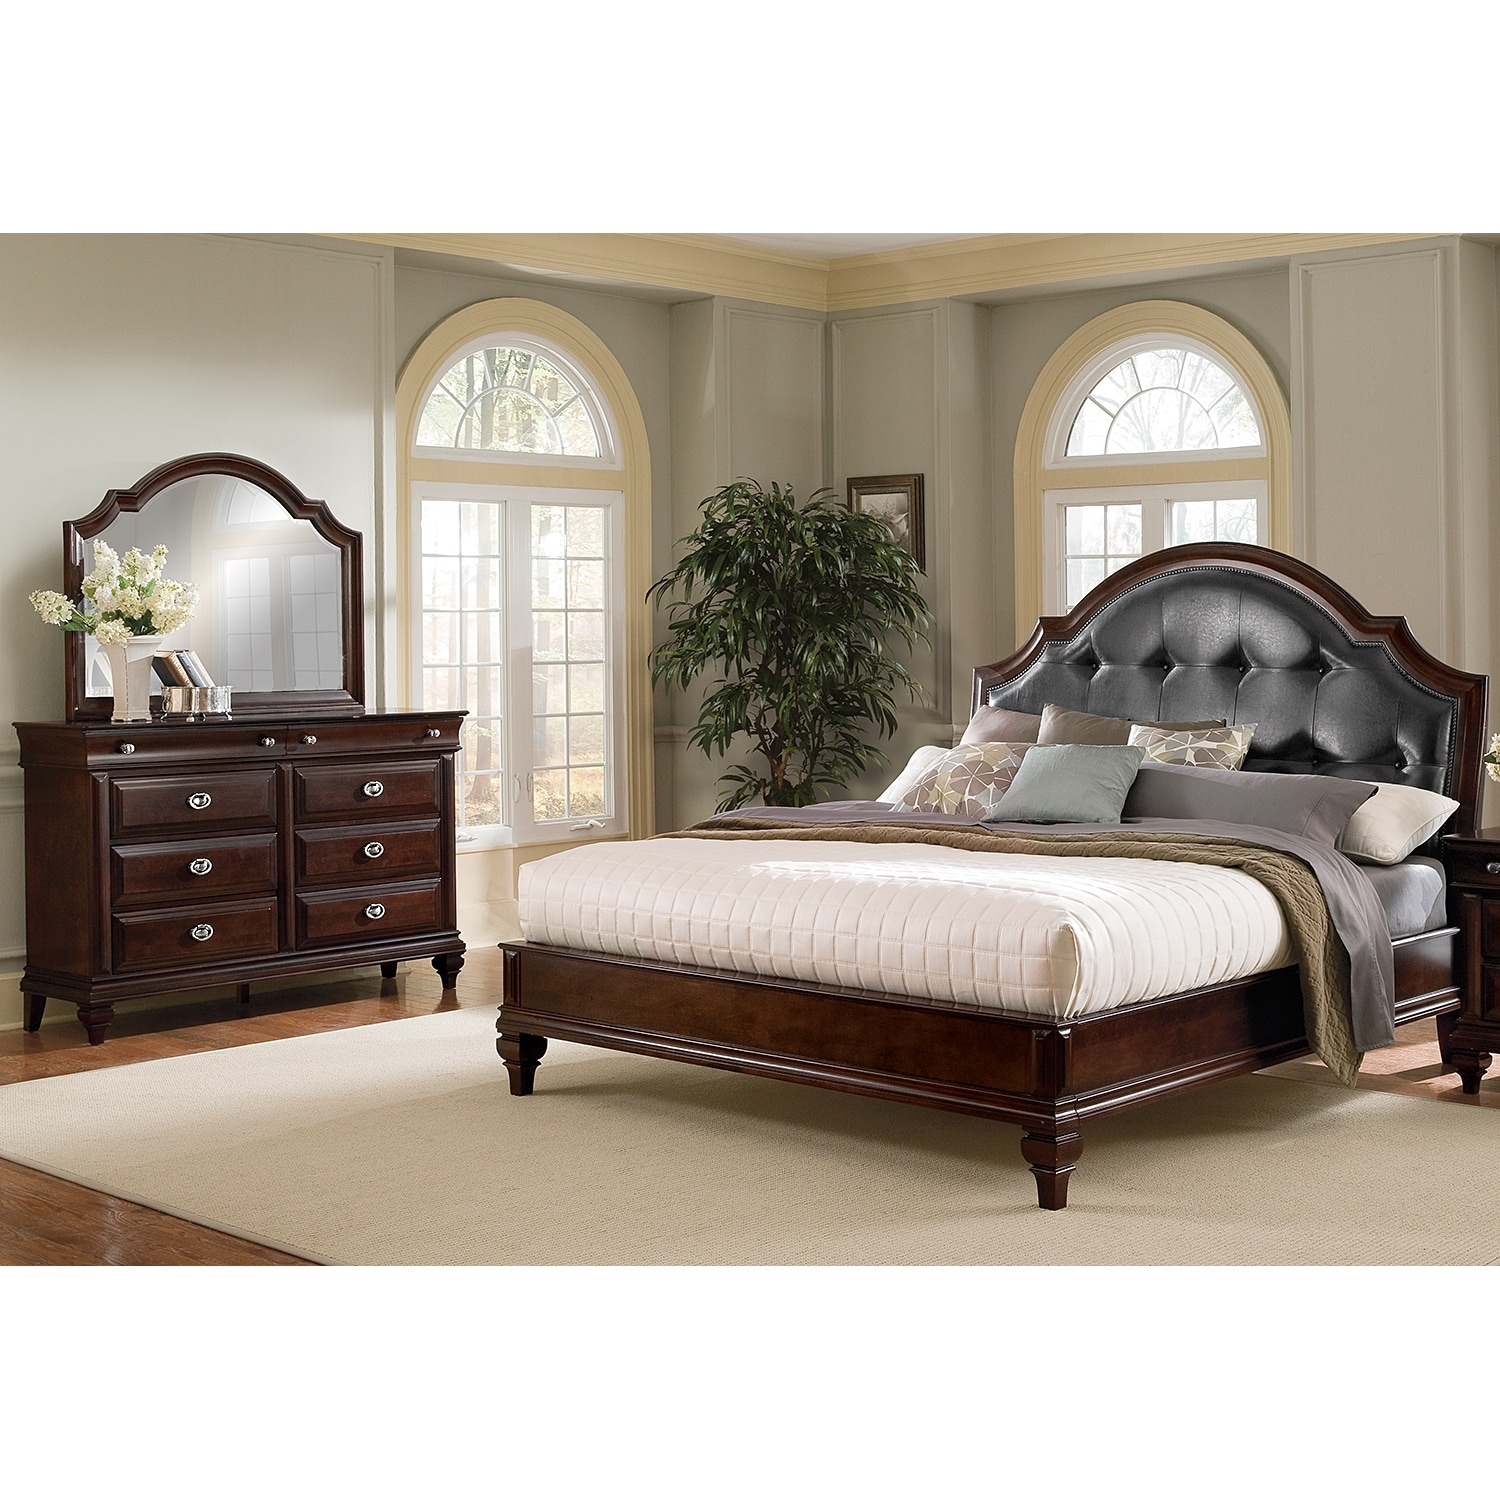 Manhattan 5-Piece King Bedroom Set - Cherry | Value City Furniture